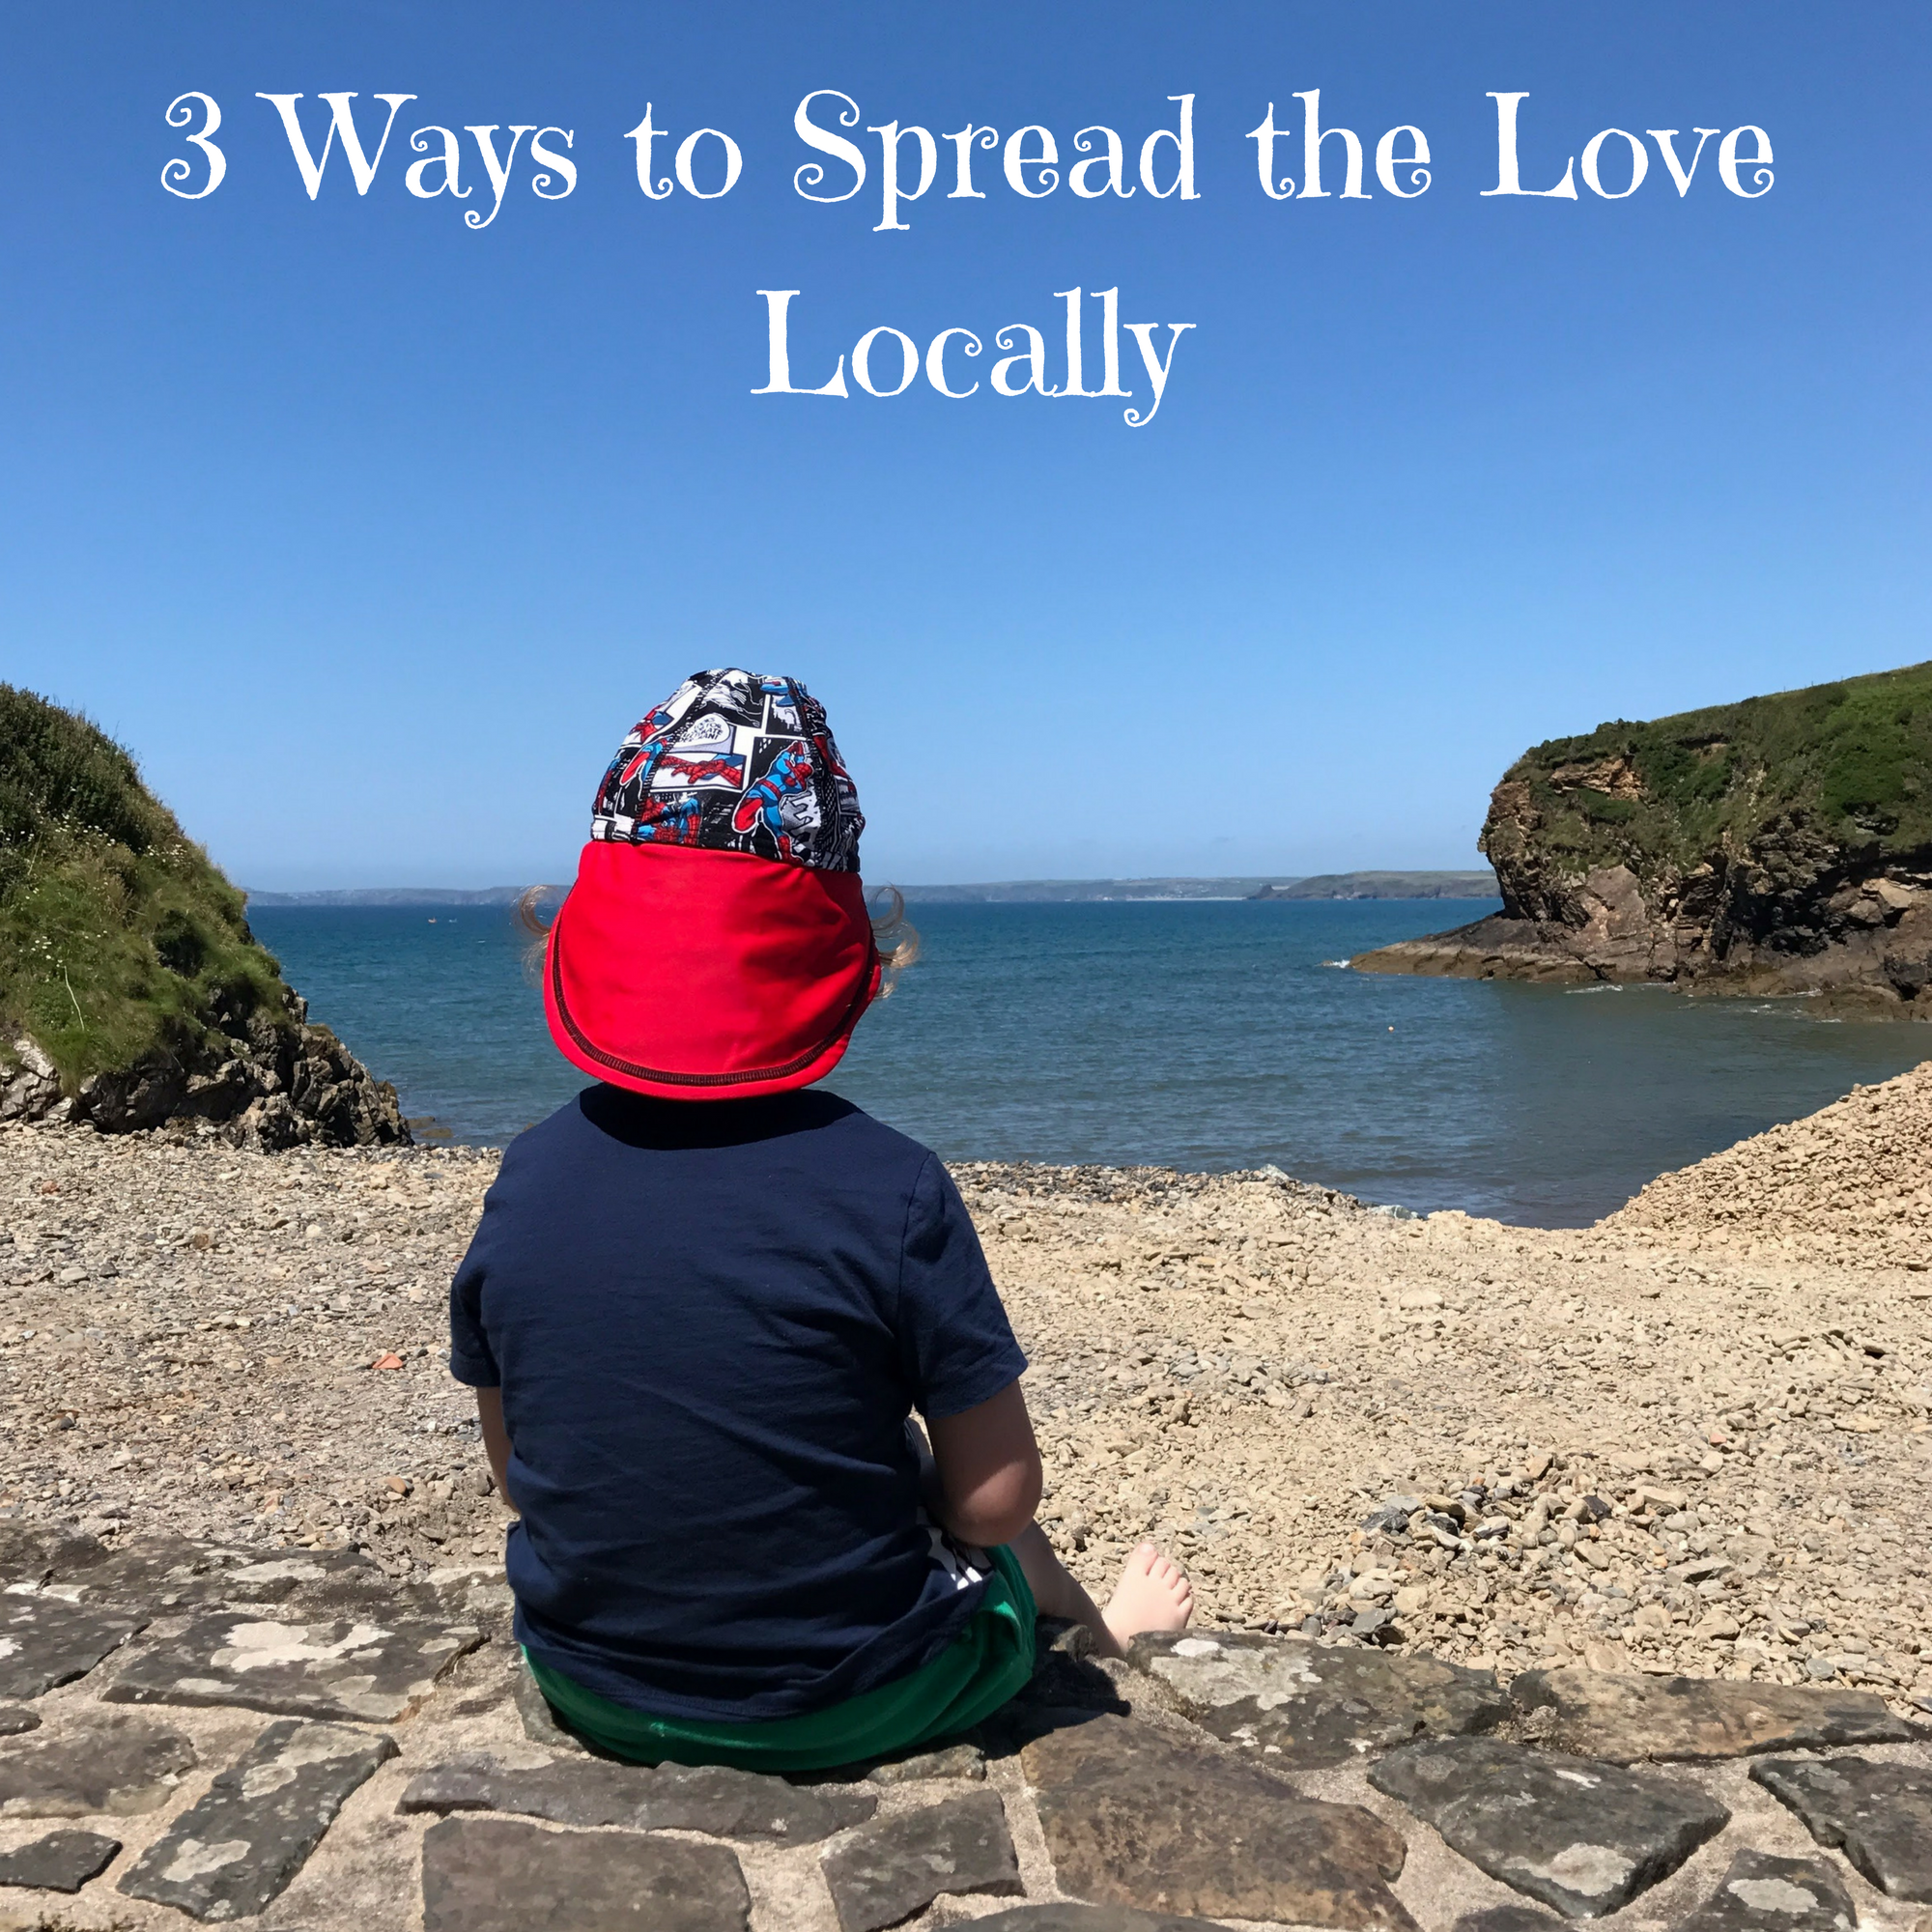 3 Ways to Spread the Love Locally